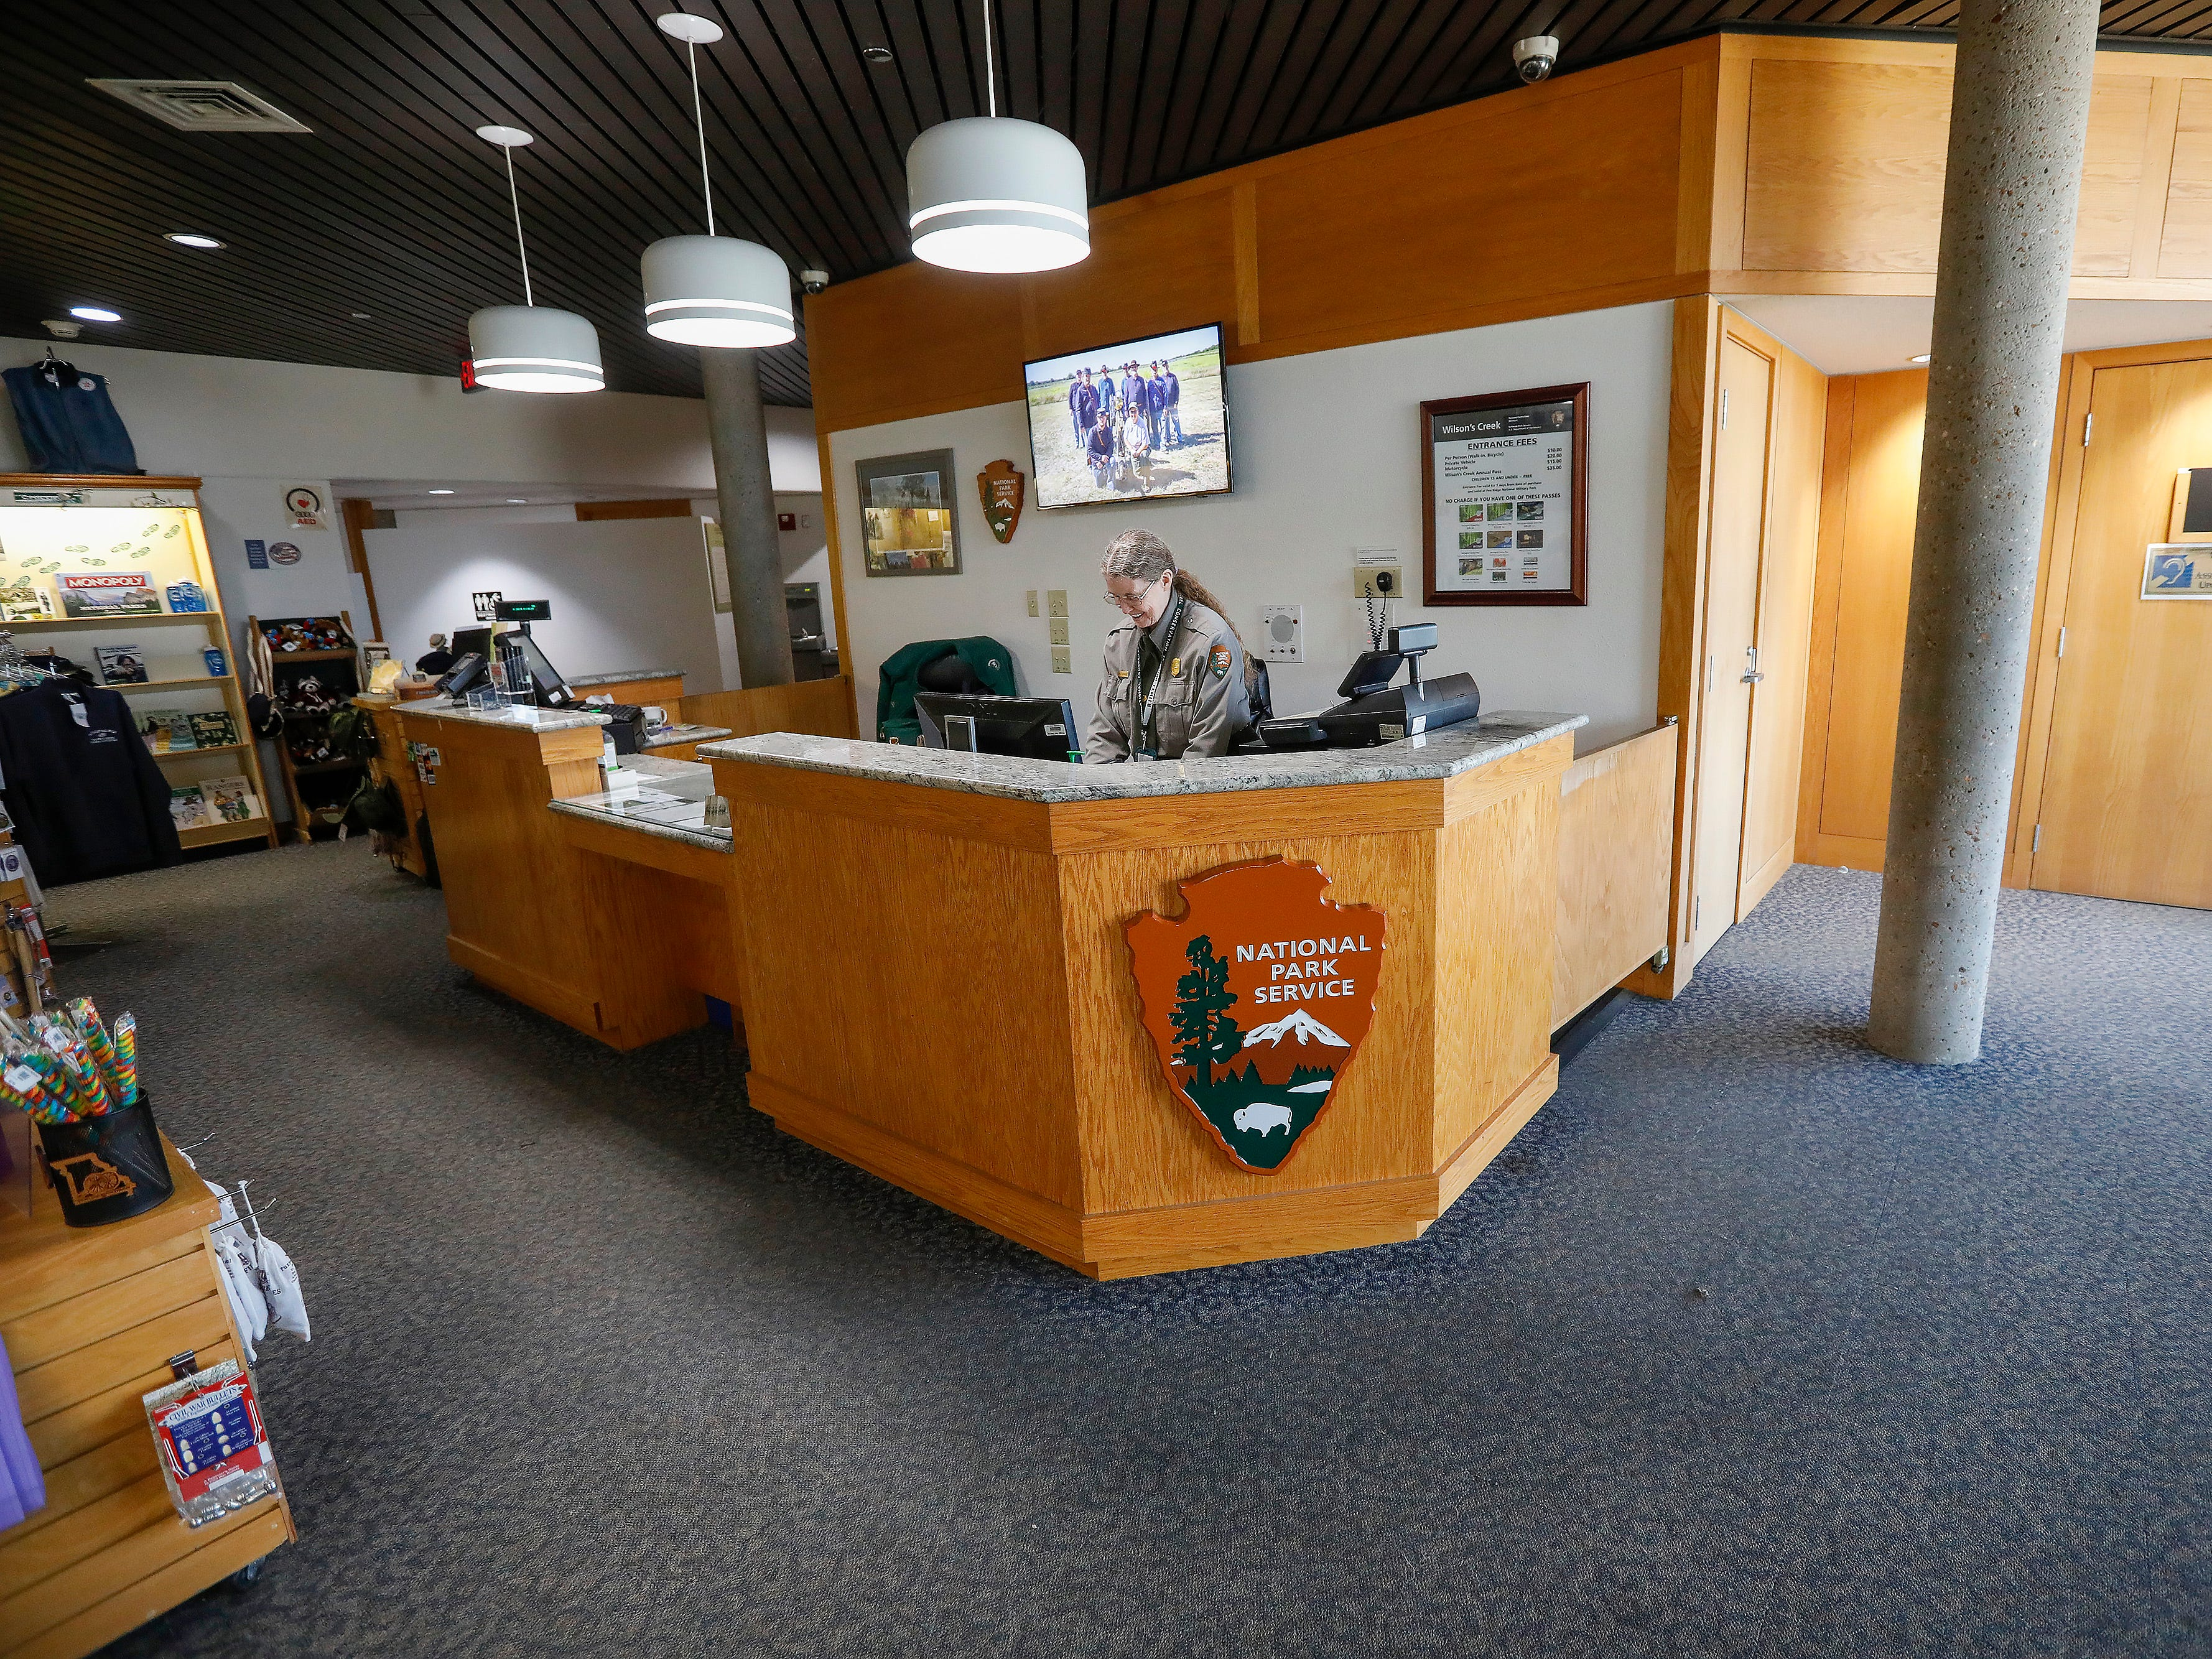 The front desk will be moved to the opposite wall and other changes will be made to the visitors center at Wilson's Creek National Battlefield during the renovation.